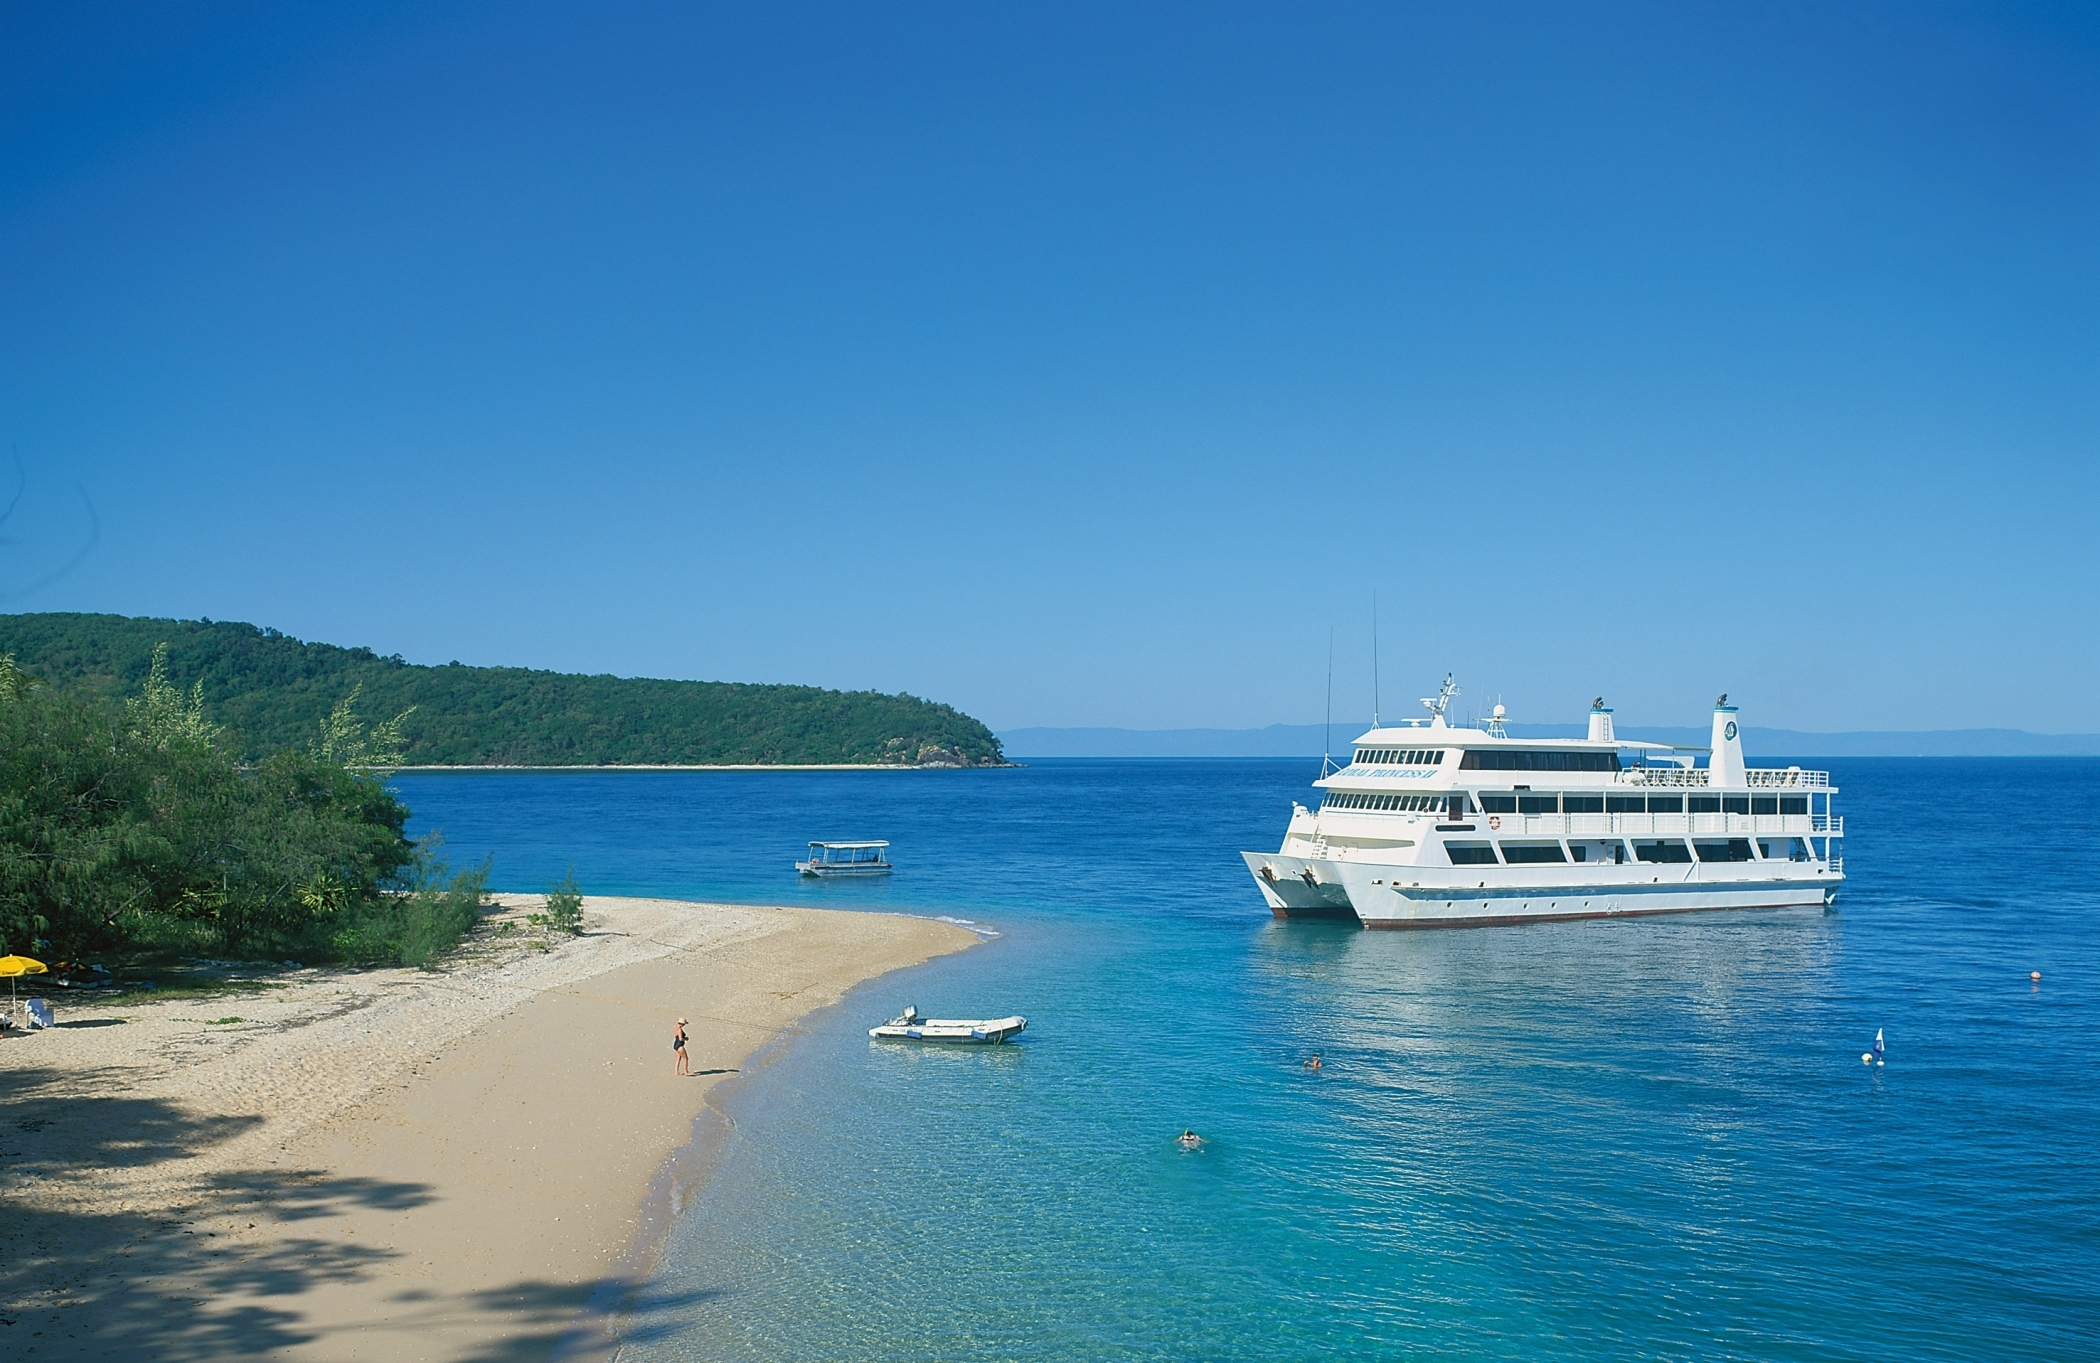 Coral Expeditions II, the ship servicing Great Barrier Reef with Pelorus Island